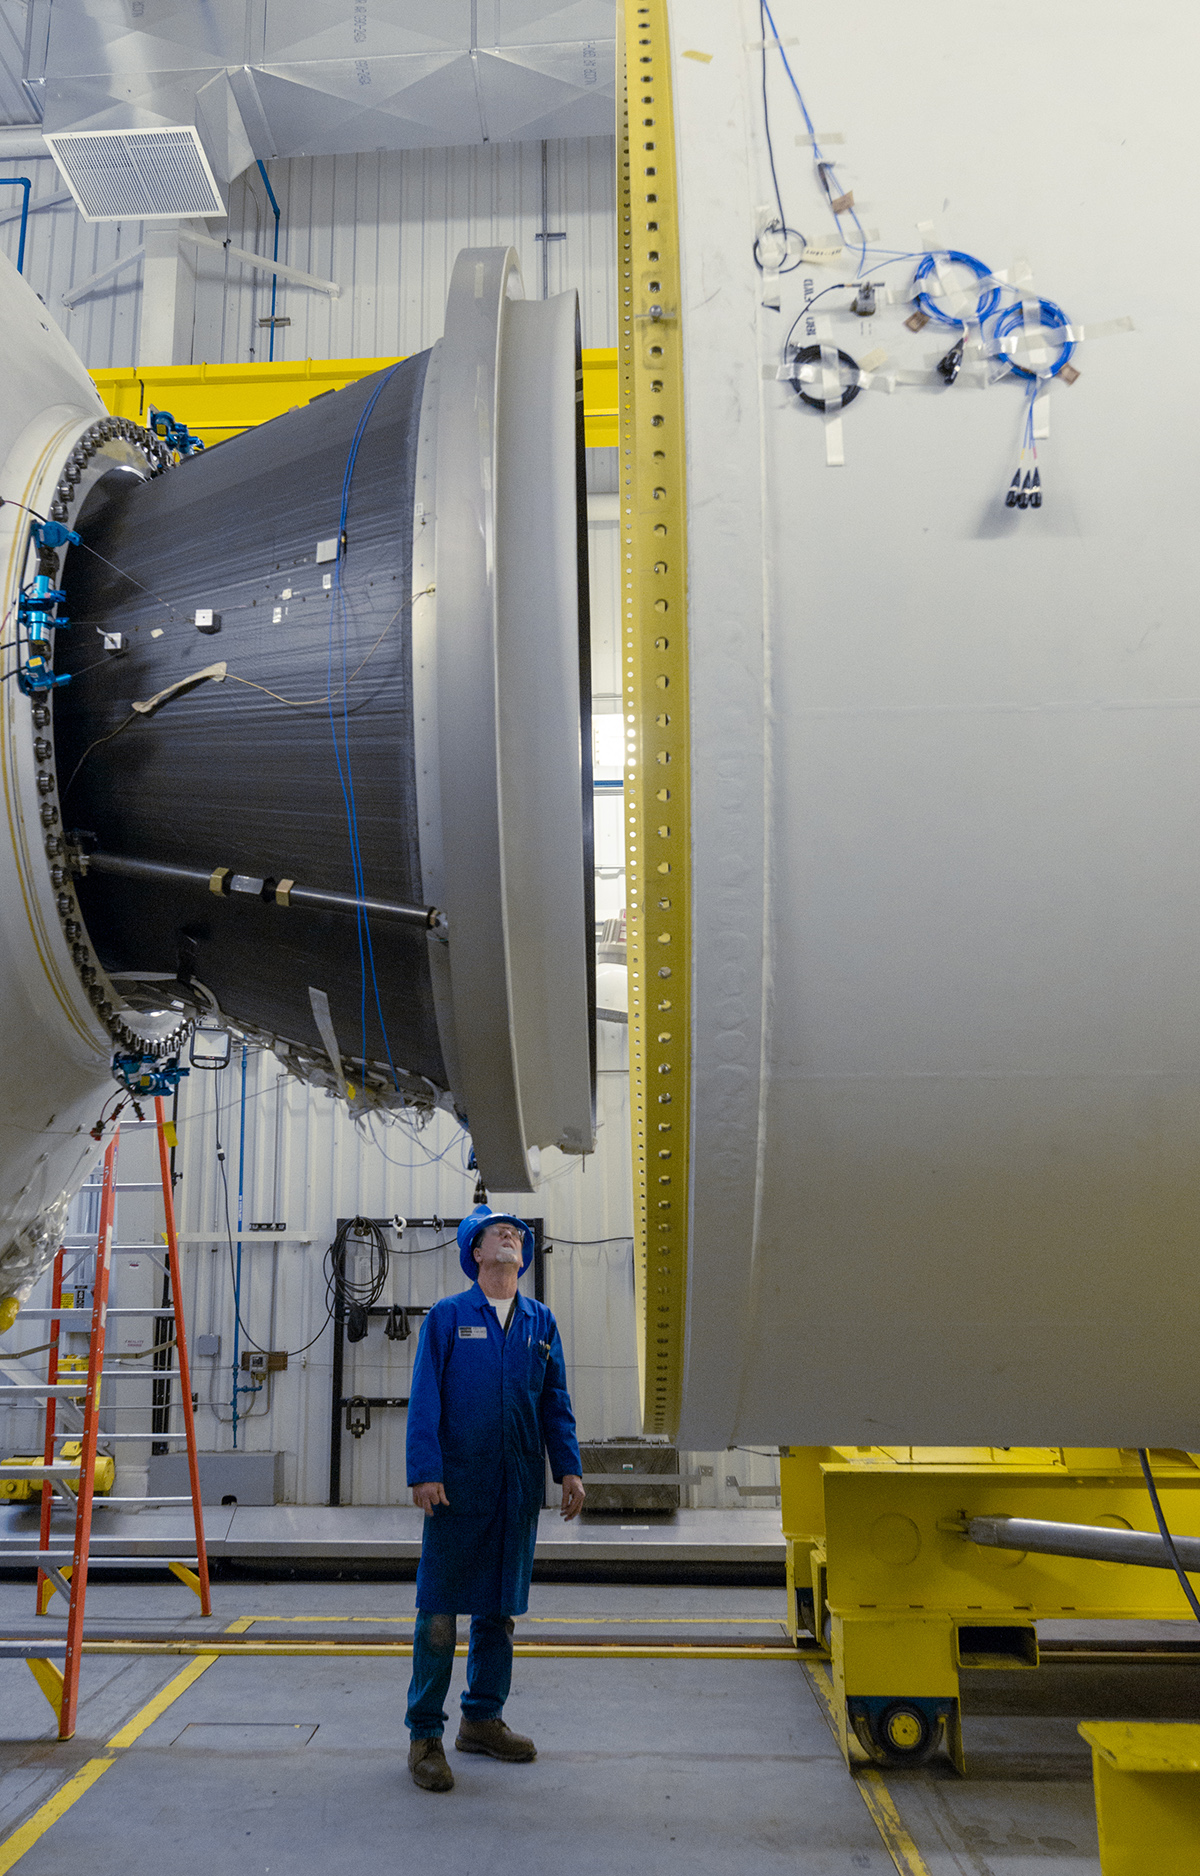 Northrop Grumman engineers unite the forward end of the second stage with a space segment ahead of static fire. (January 2020)